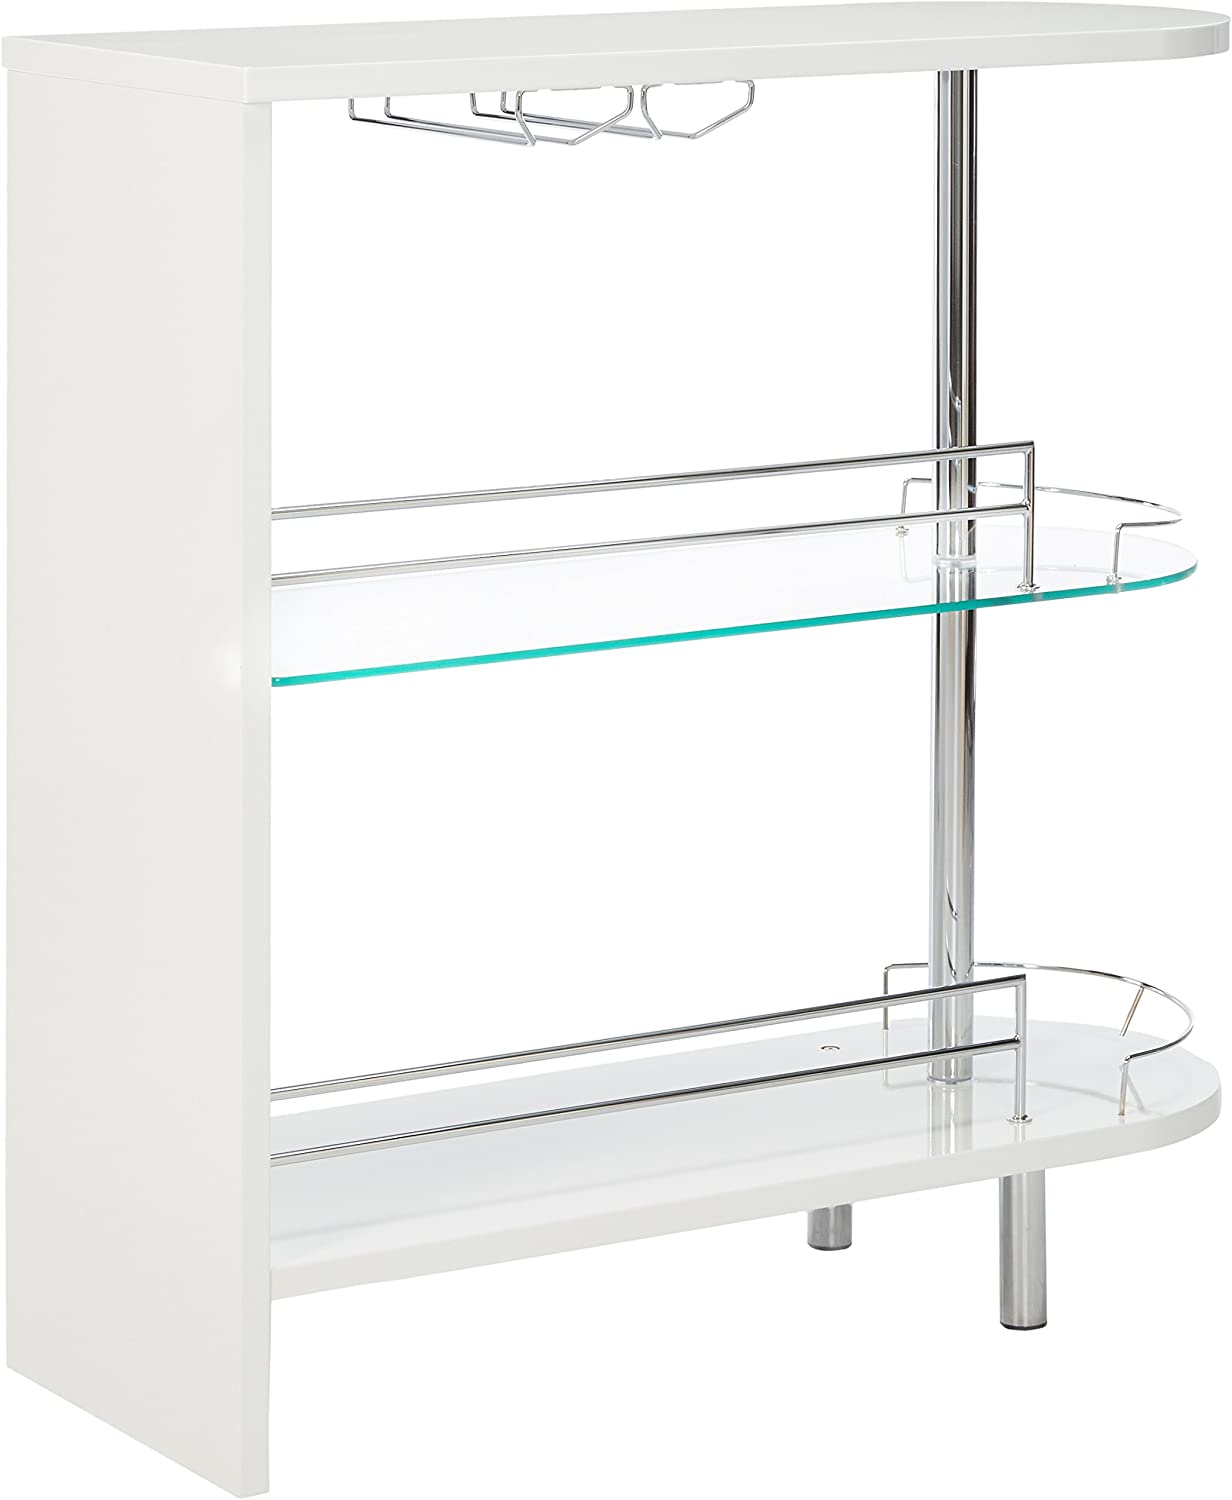 COASTER 2-holder 4 years Clearance SALE! Limited time! warranty Bar Table White Clear Glossy